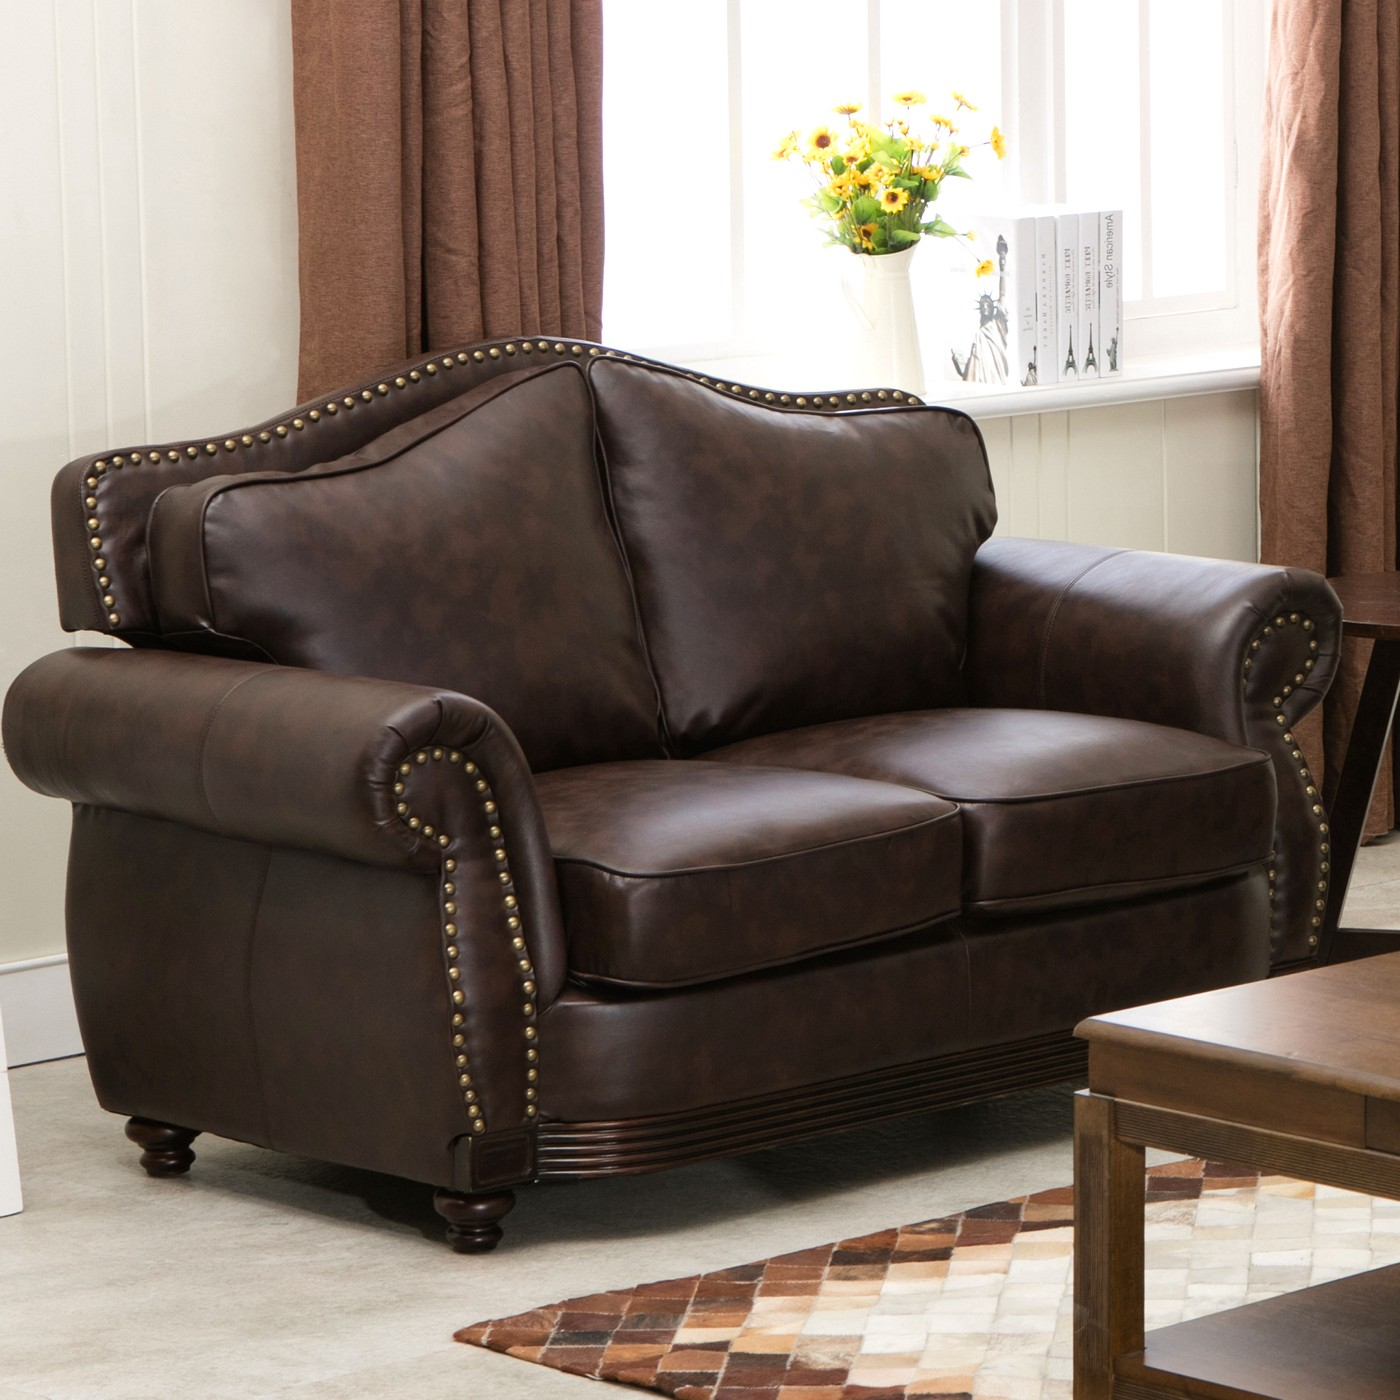 Steve Silver Leather Sofa Small House Interior Design